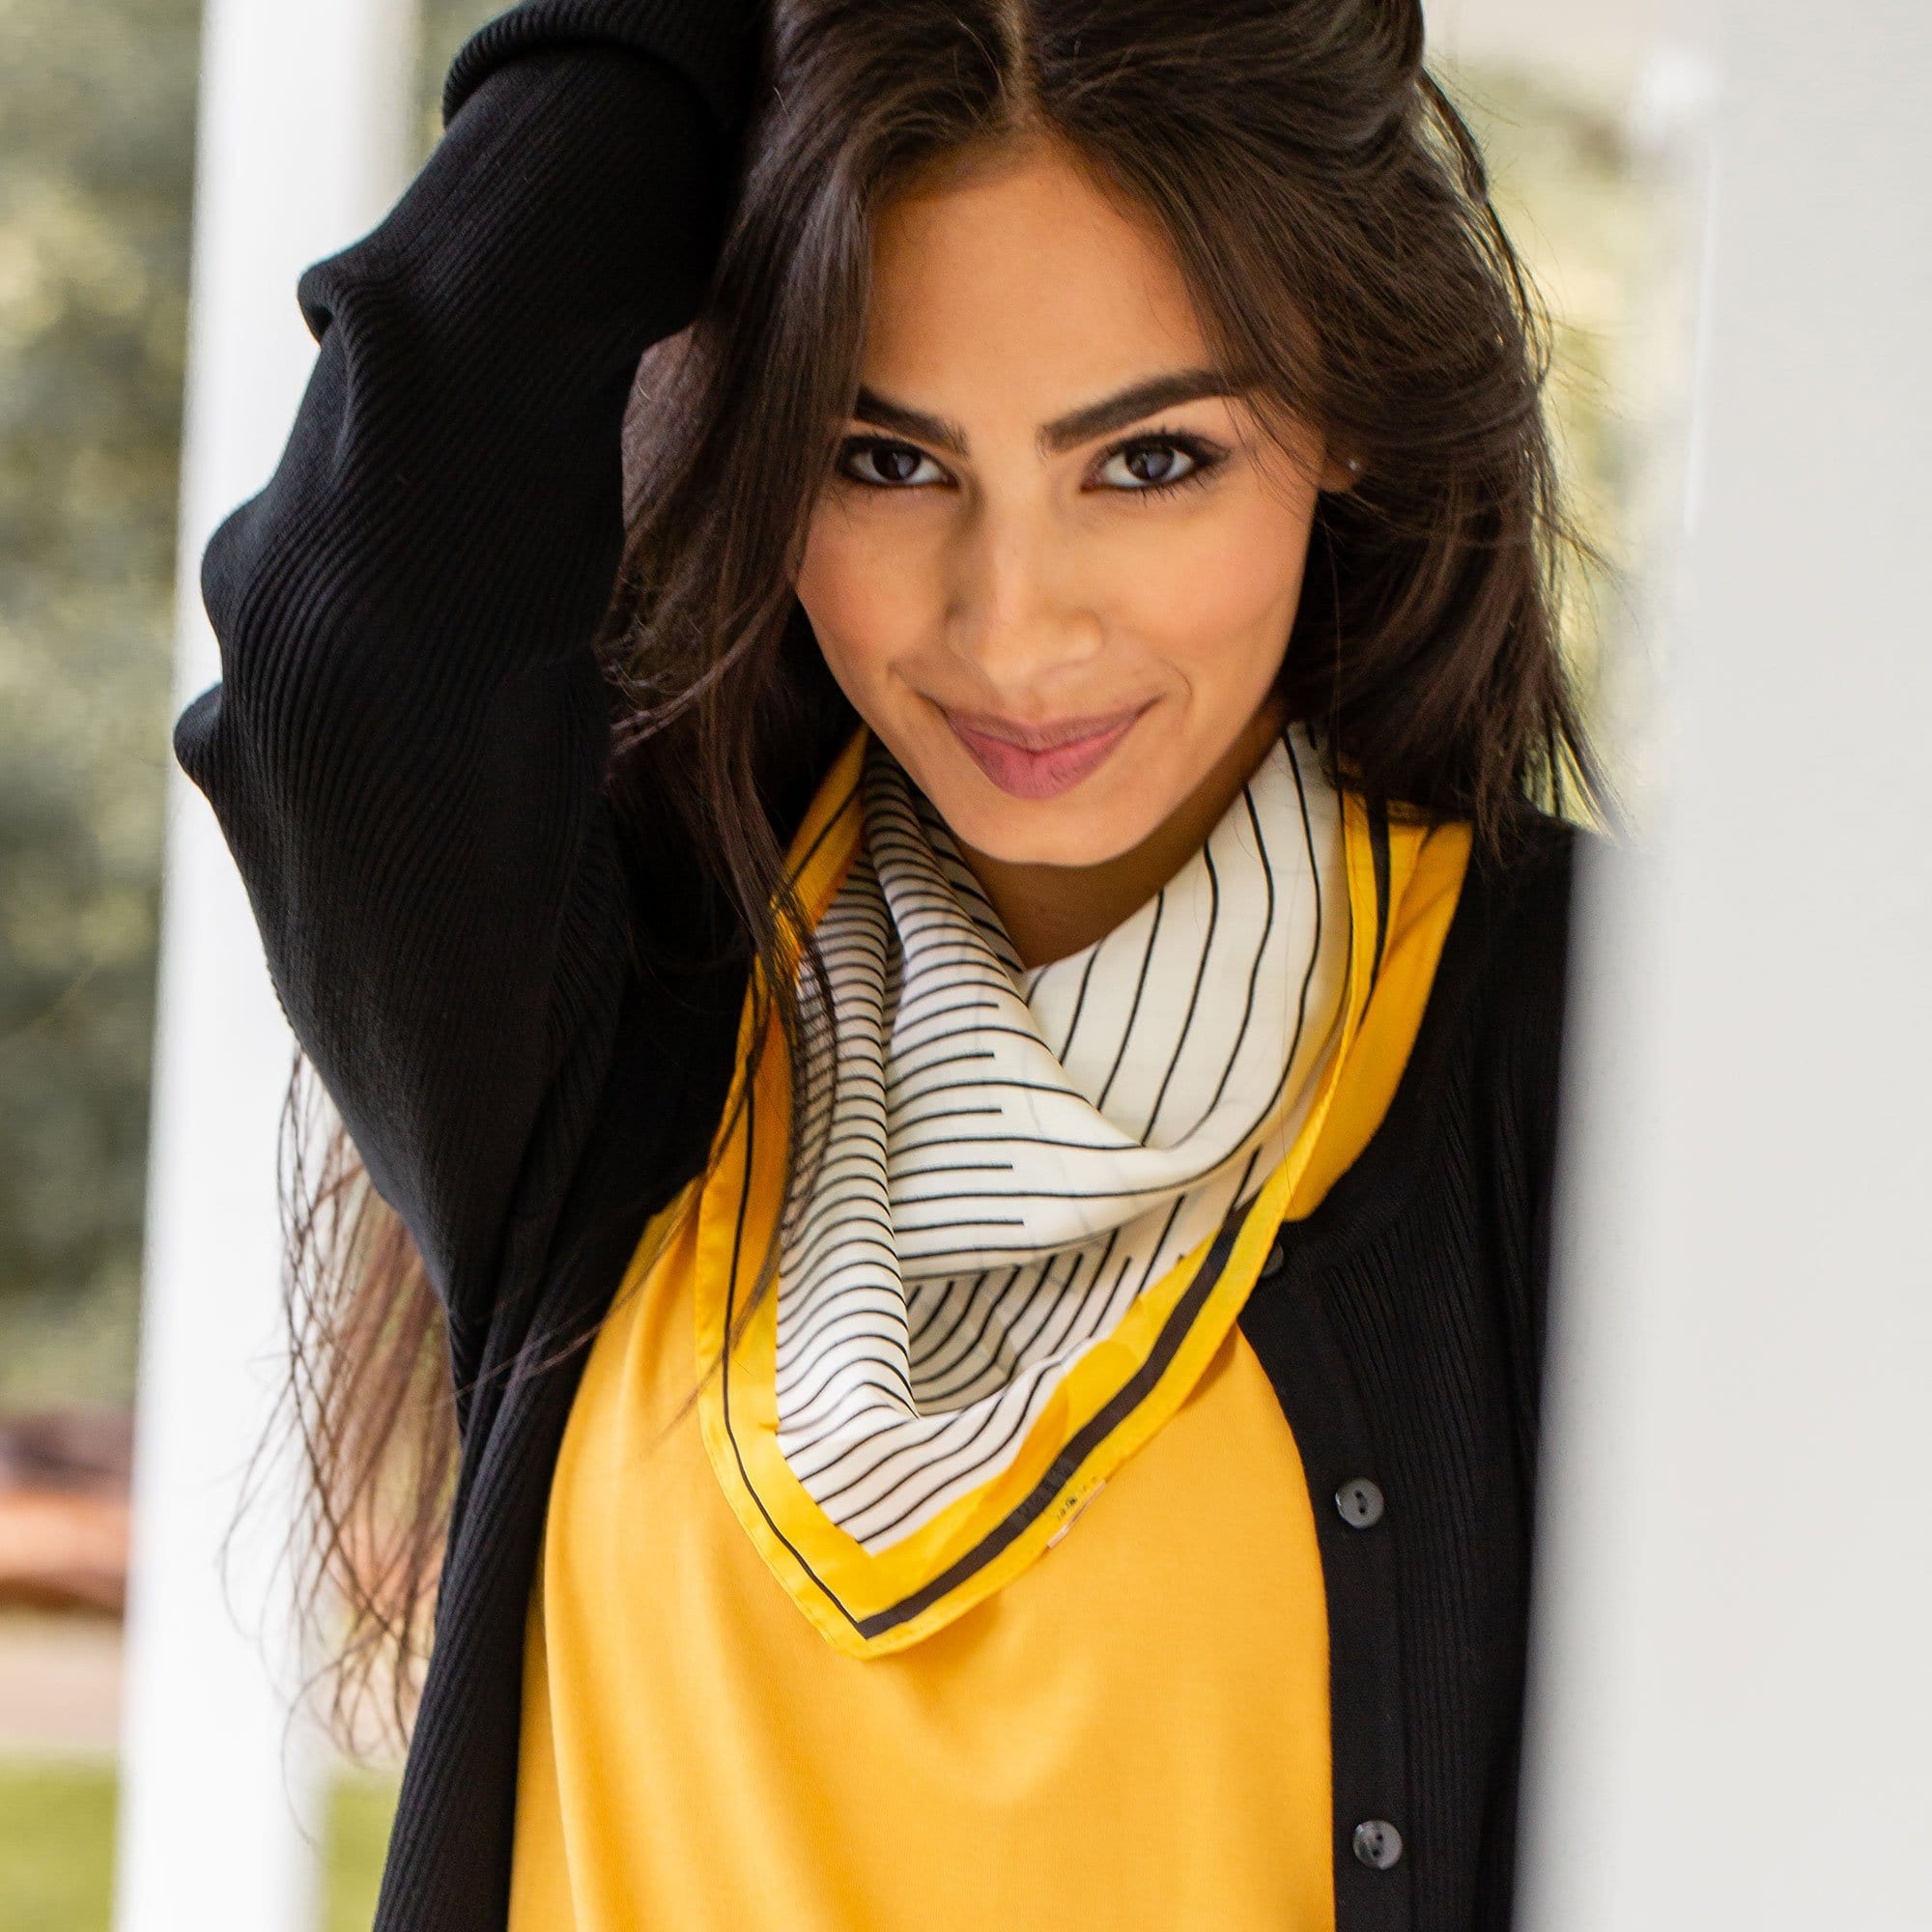 Black & Yellow Line Scarf